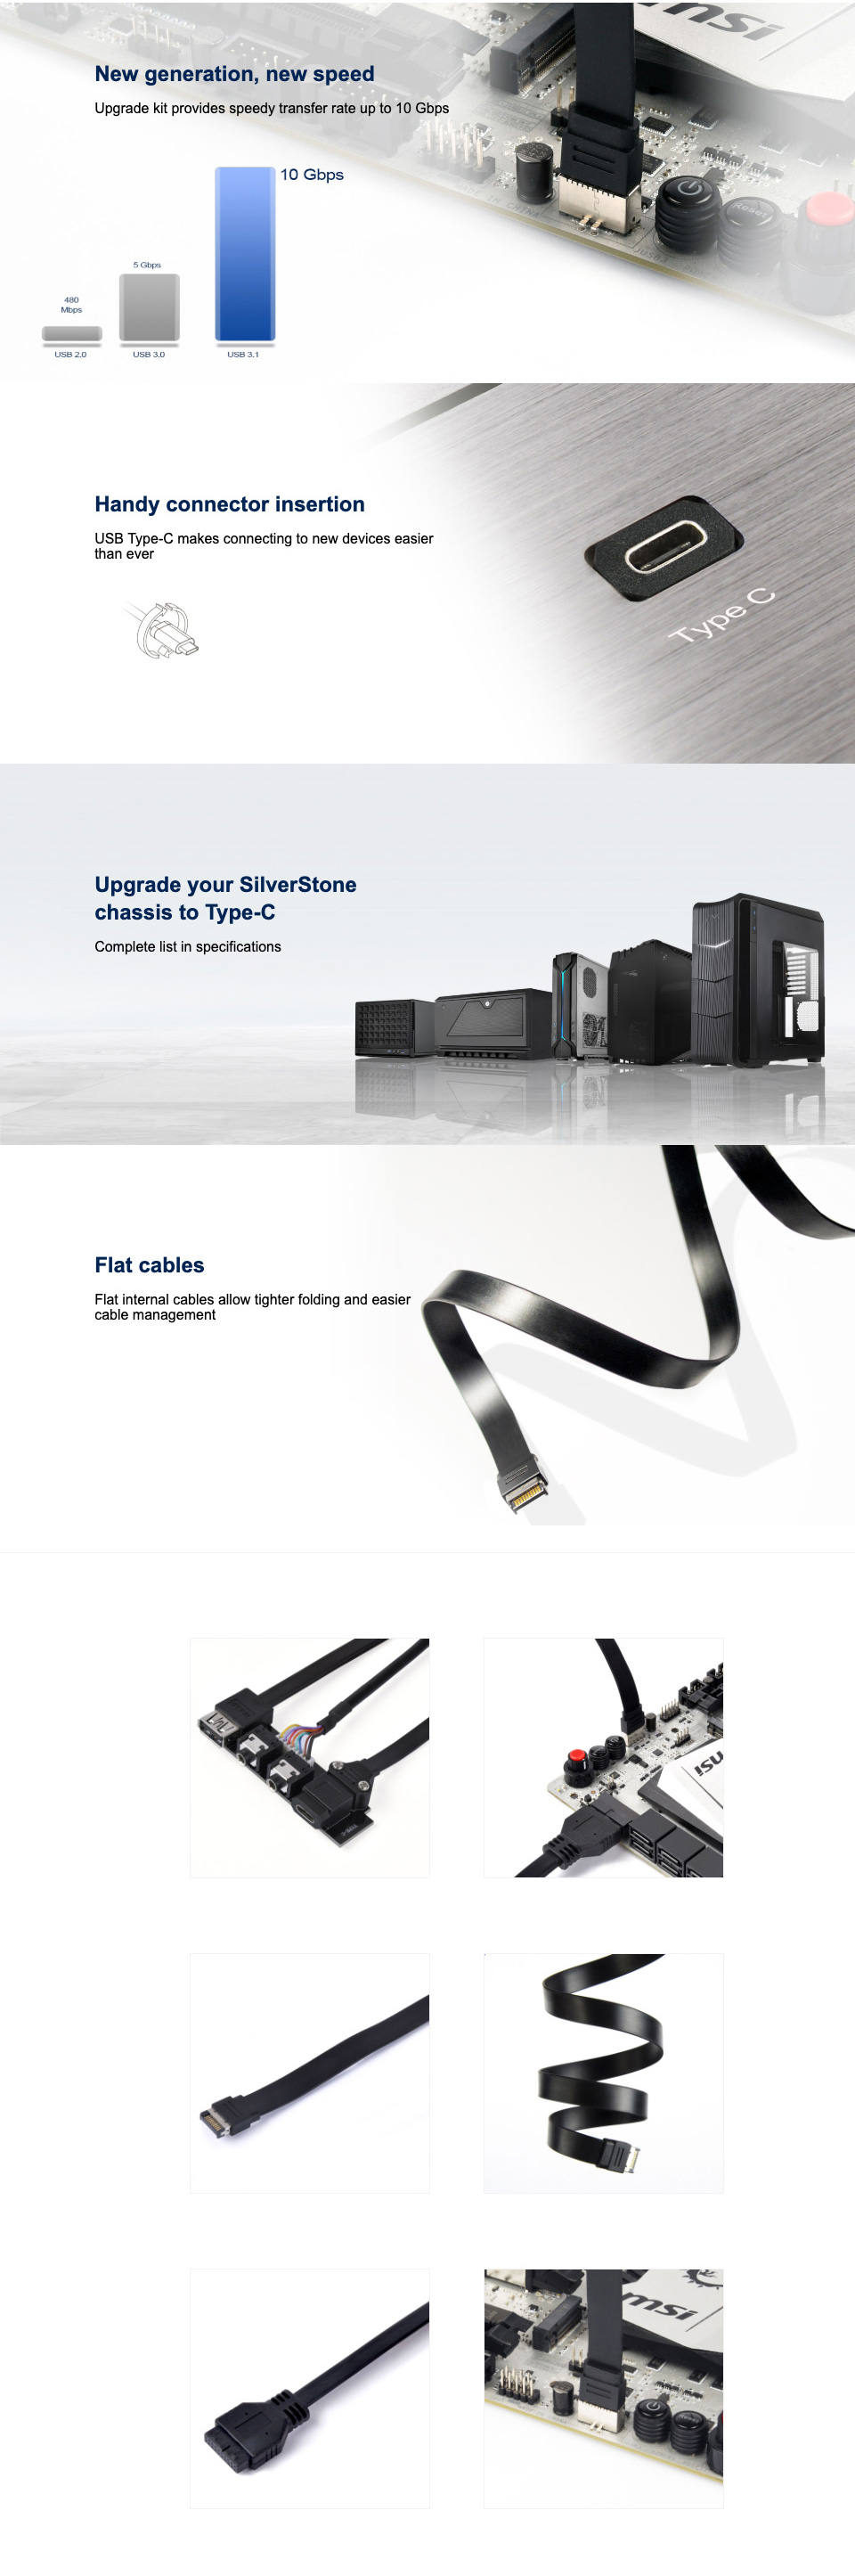 Silverstone USB3.1 Upgrade Kit features